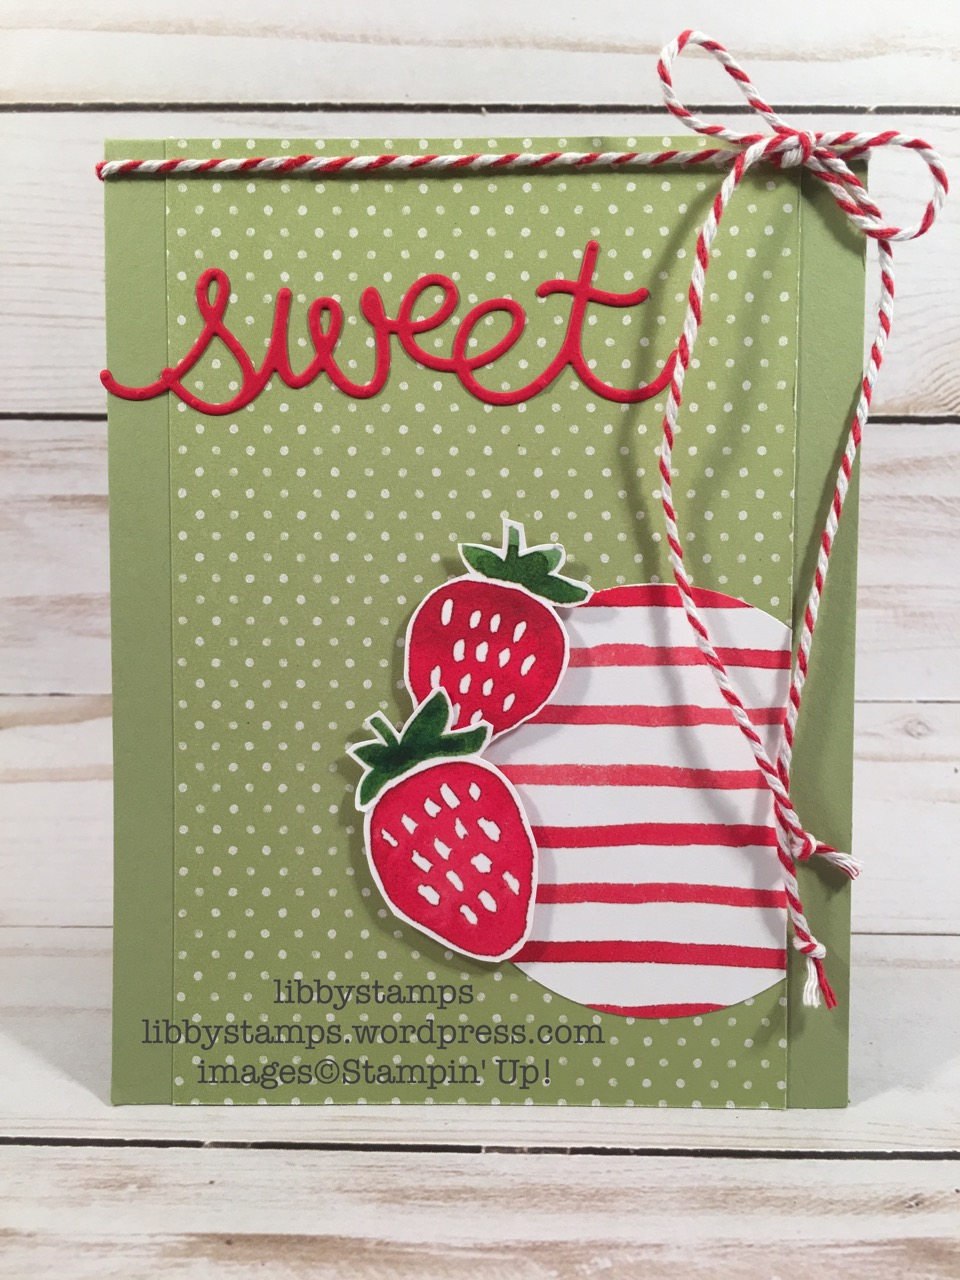 libbystamps, stampin up, strawberry, TSOT#315, Cupcake Cutouts Framelits, Layering Circles Framelits, Fruit Stand DSP, Tasty Treats DSP, Occasions Mini 2017, Sale-a-Bration 2017